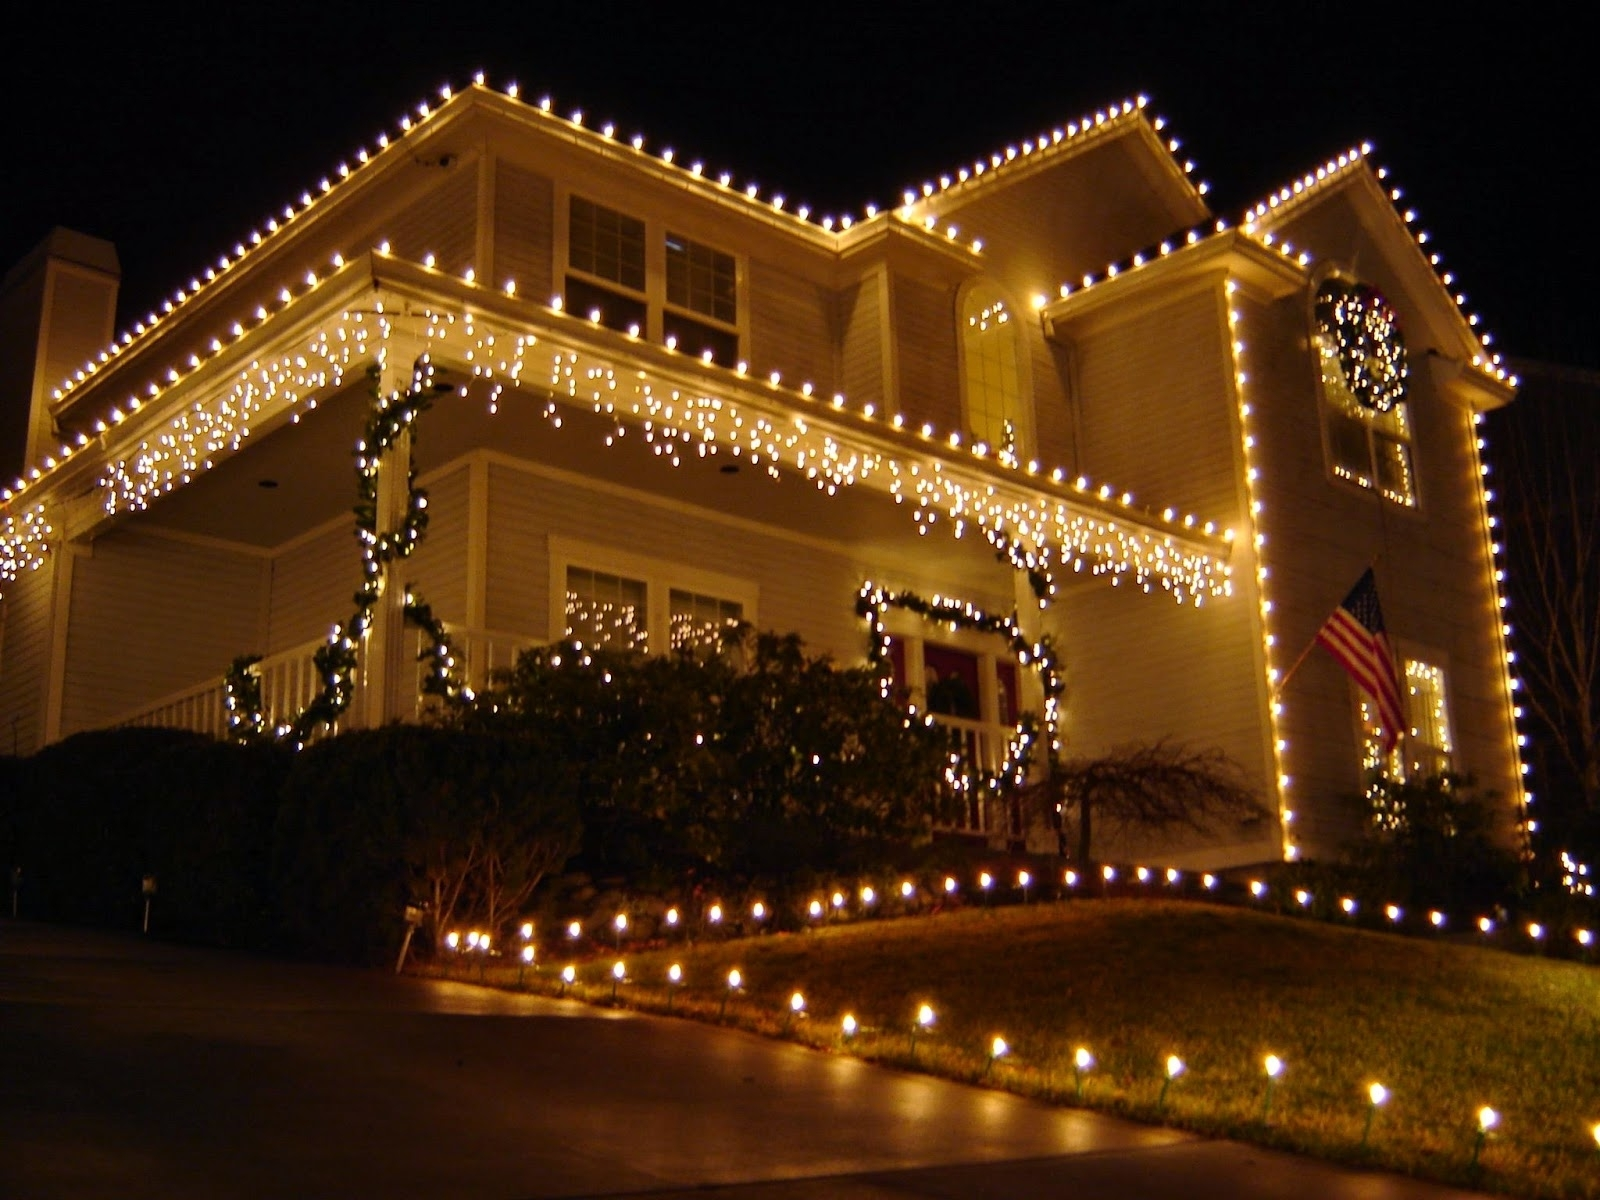 Lighted Roof Line And Path Combined White Garland Lights On The Wall With Recent Outdoor Wall Xmas Lights (View 4 of 20)